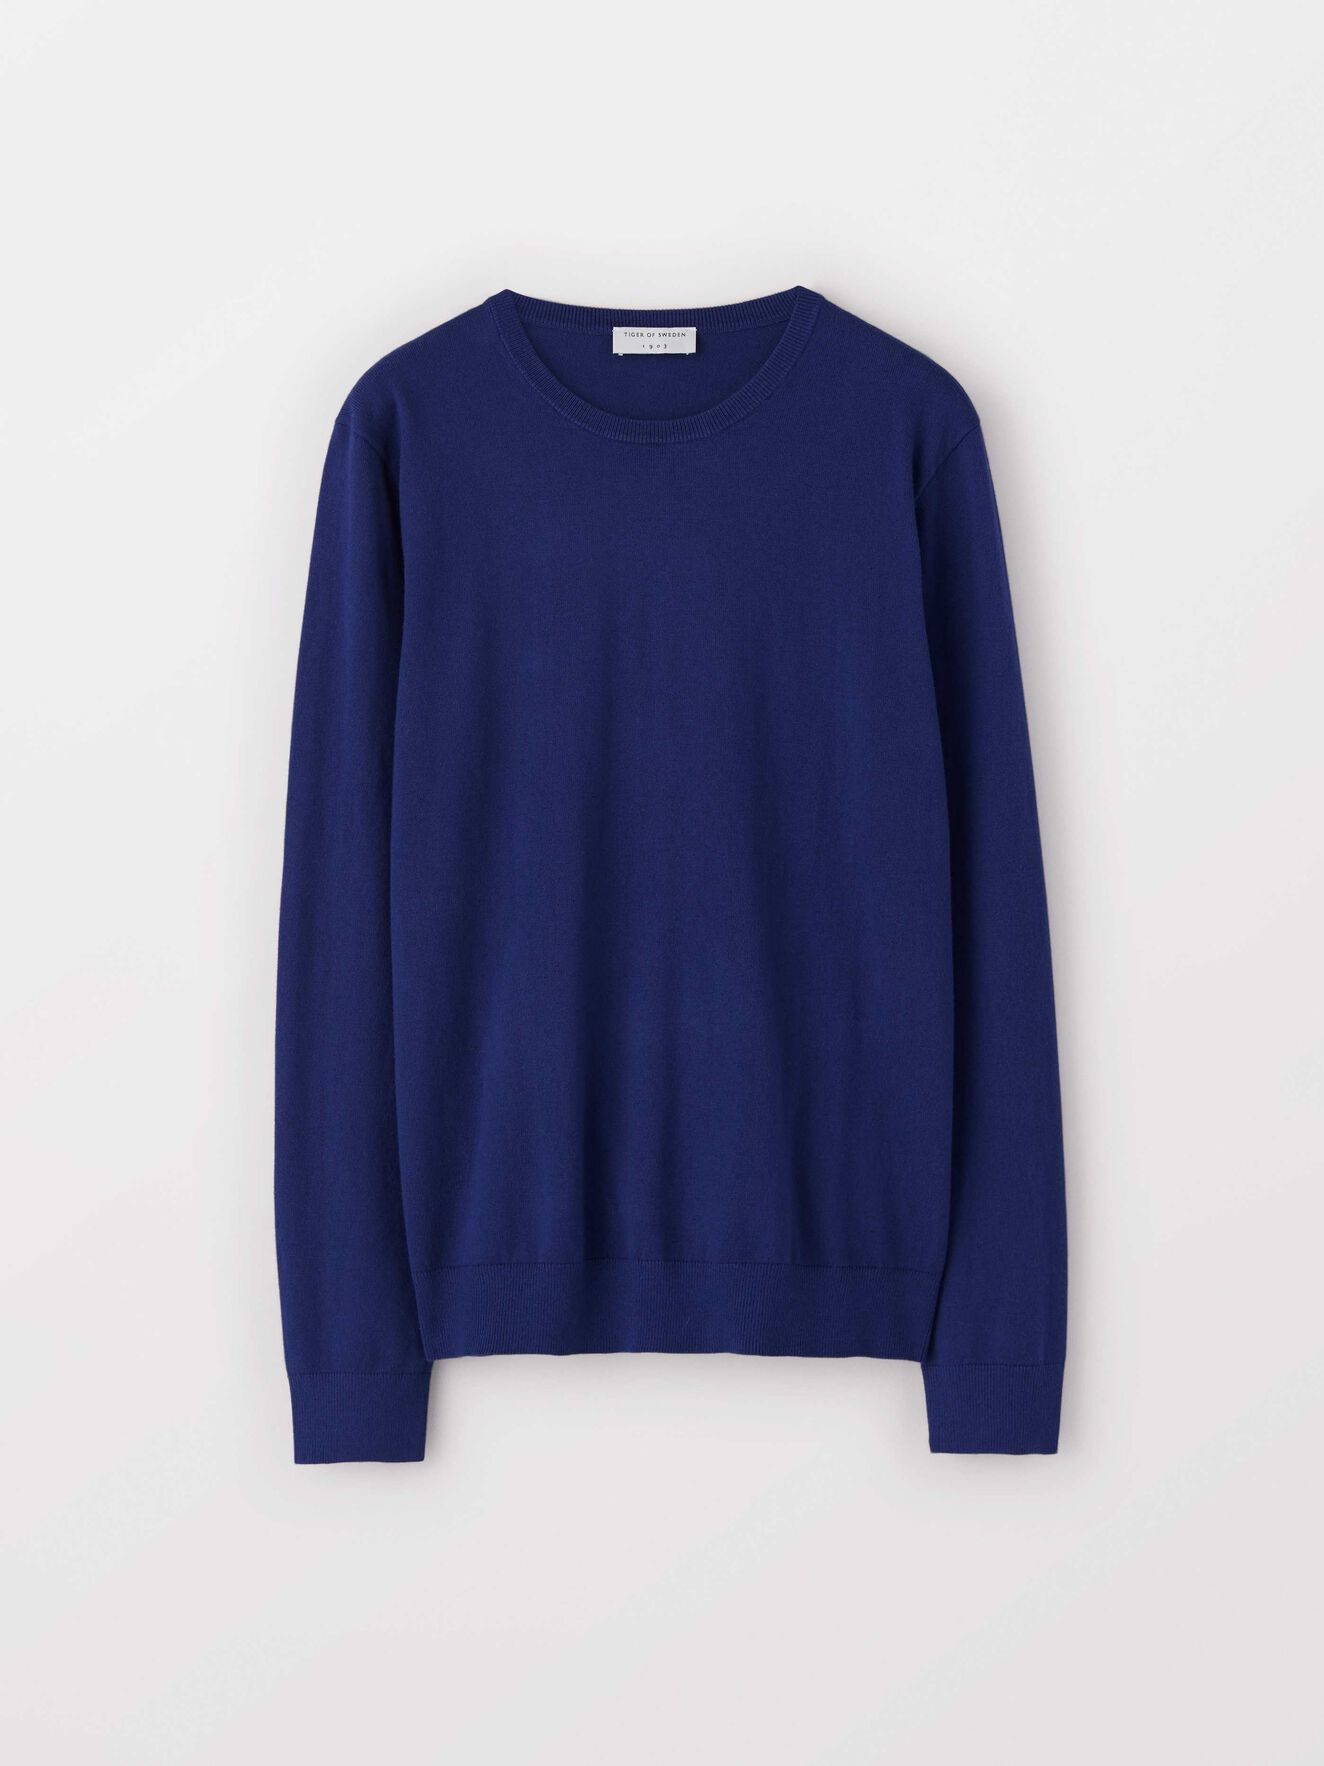 Matias Cs Pullover in Bright Navy from Tiger of Sweden